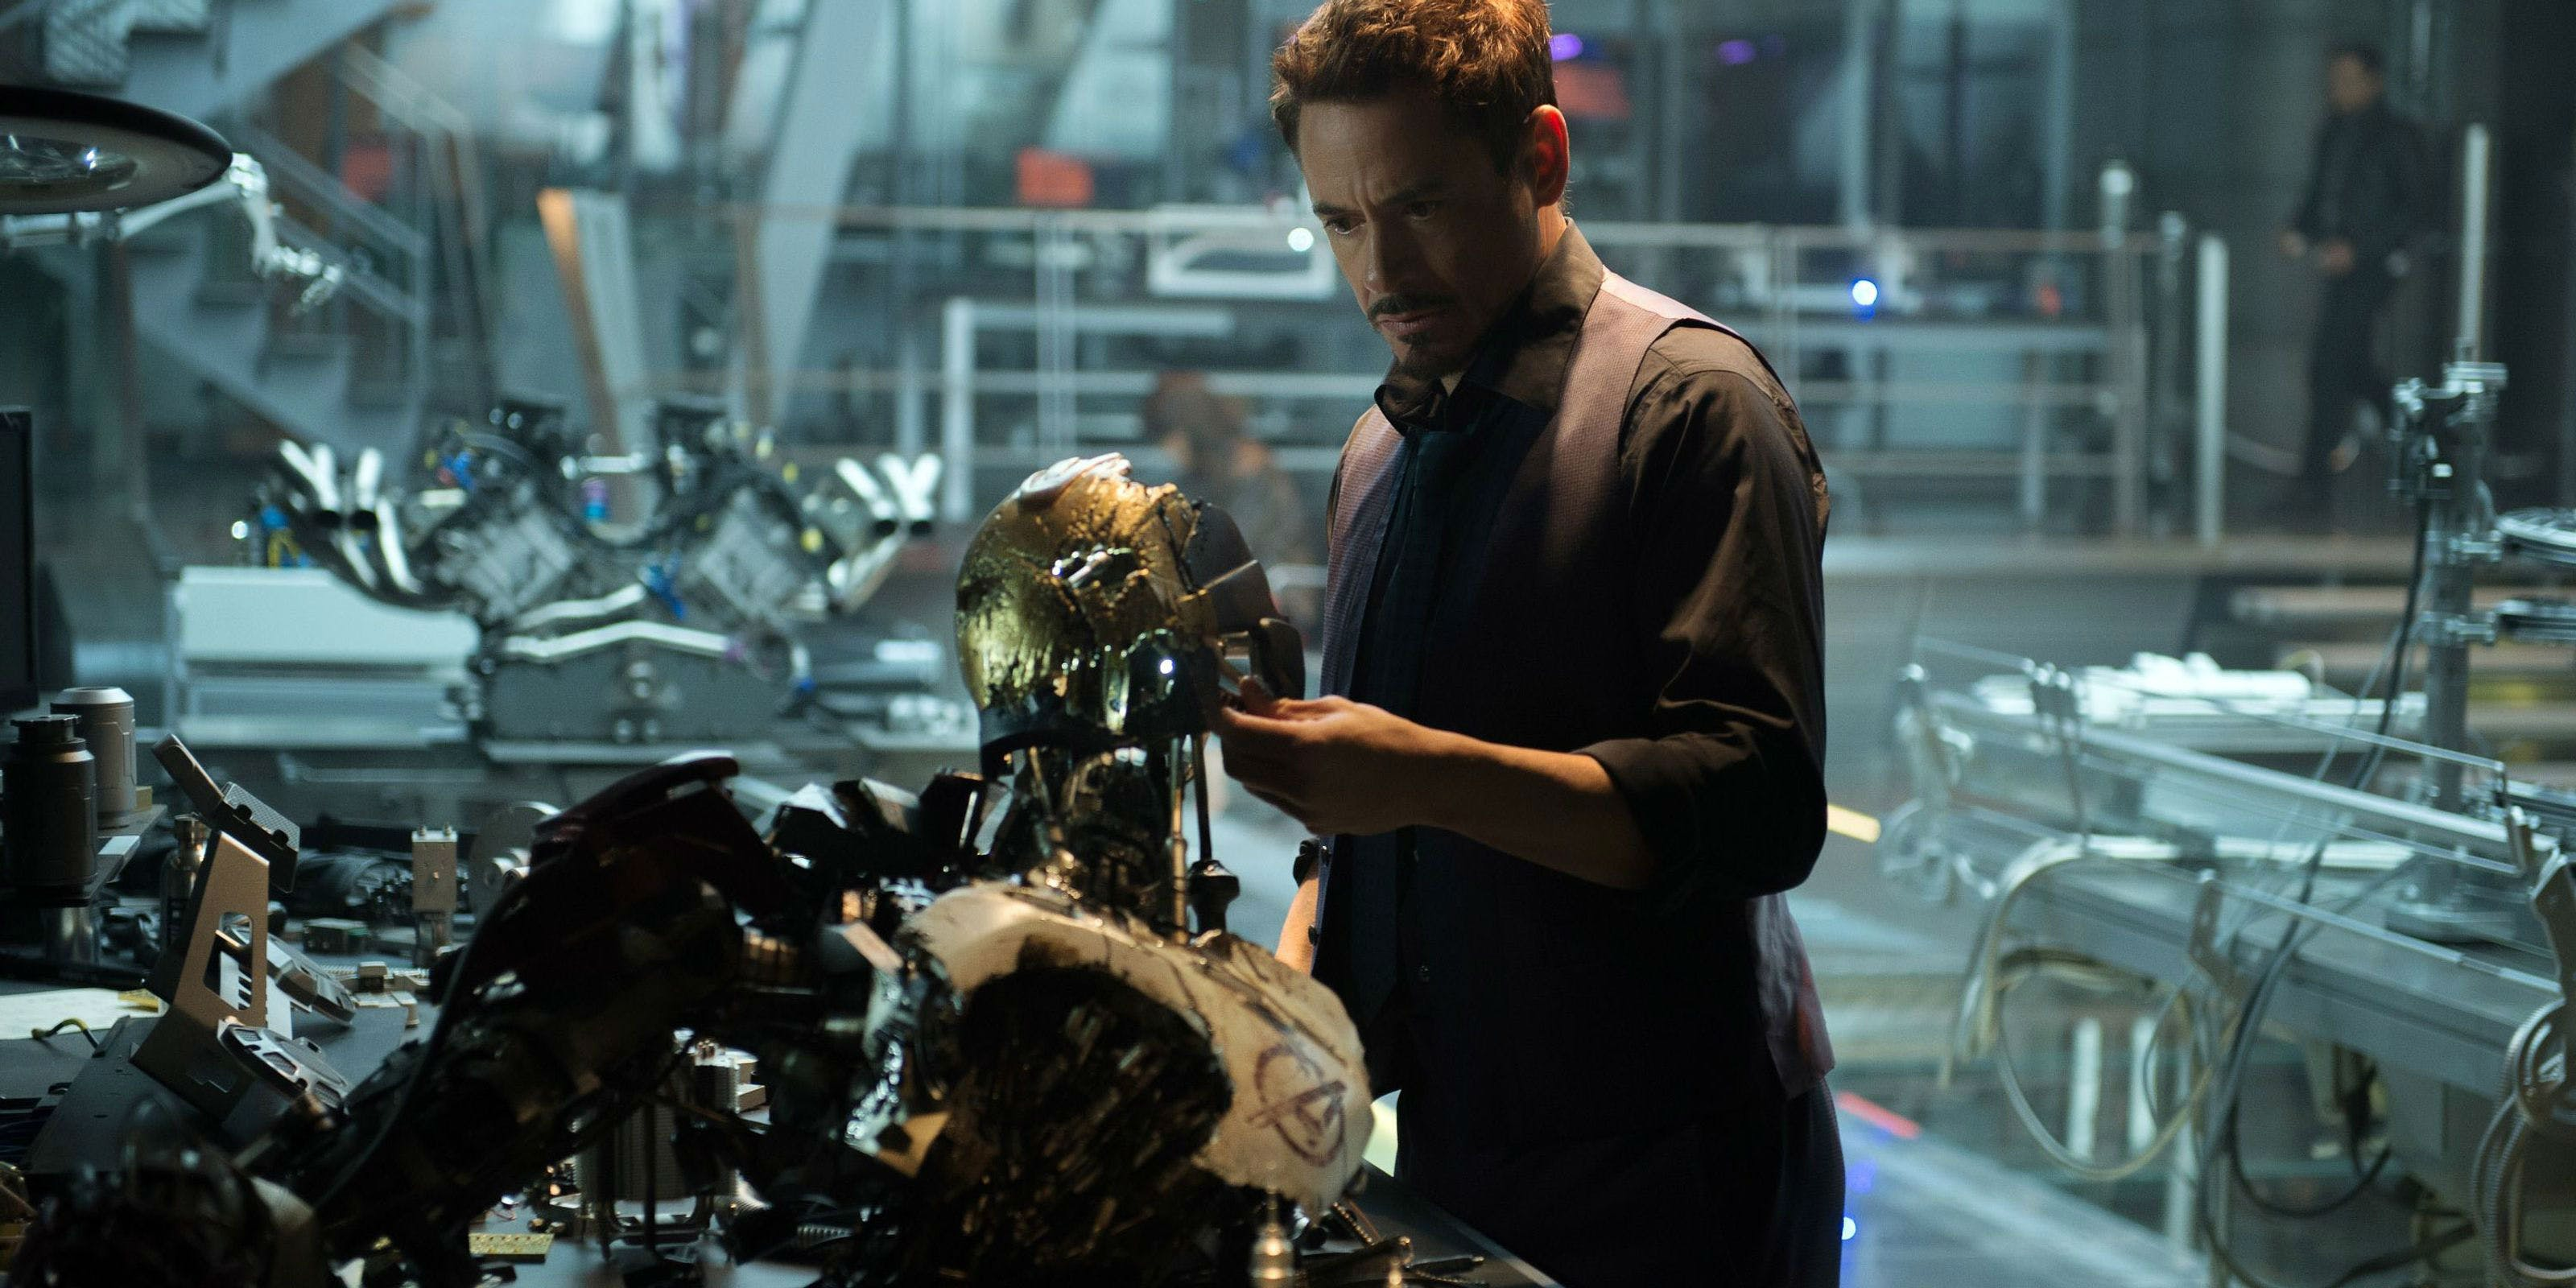 His legacy includes Ultron; the powerful AI he created.